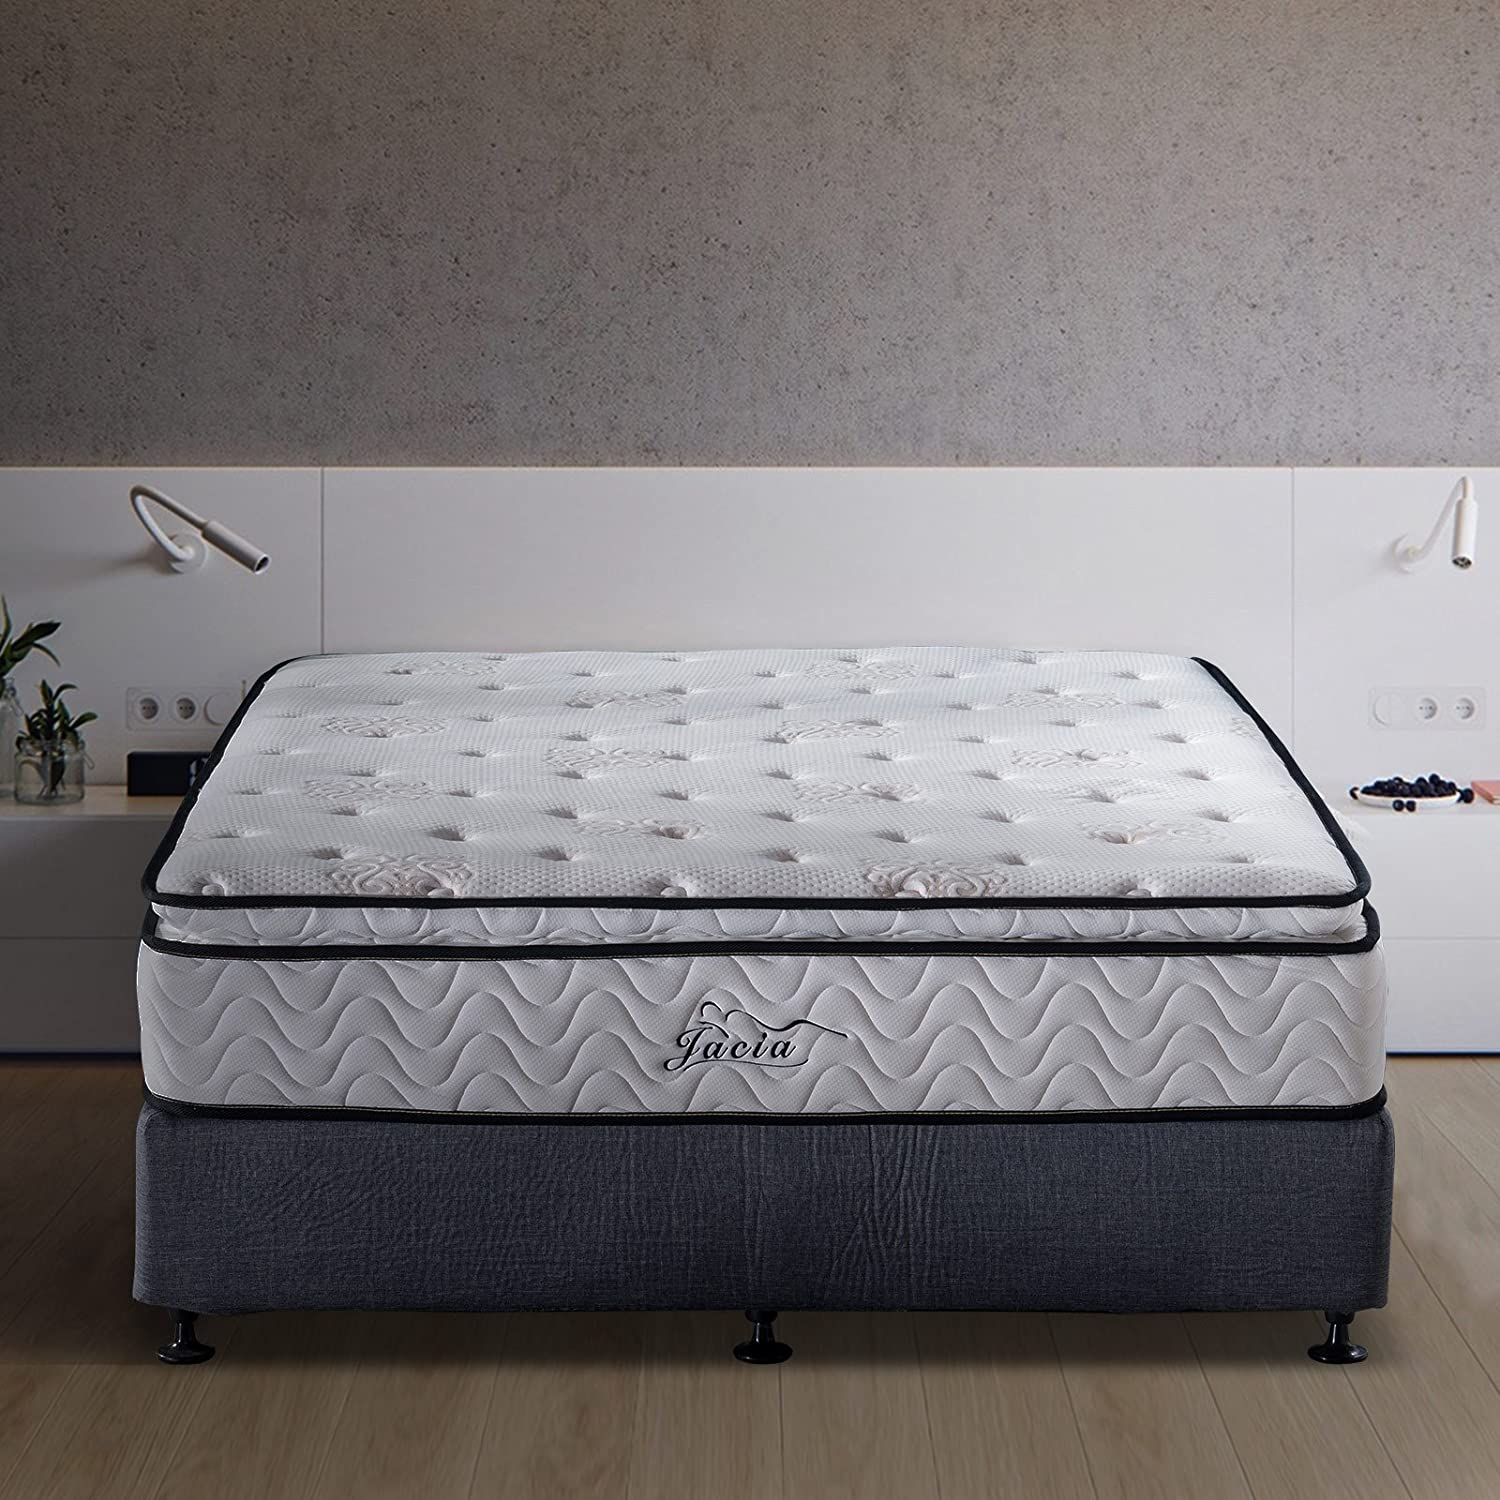 Jacia House 11.4 Inch Memory Foam Innerspring Independently Encased Coil Hybrid Mattress – Pillow Top Mattress – Bed in a Box -Twin